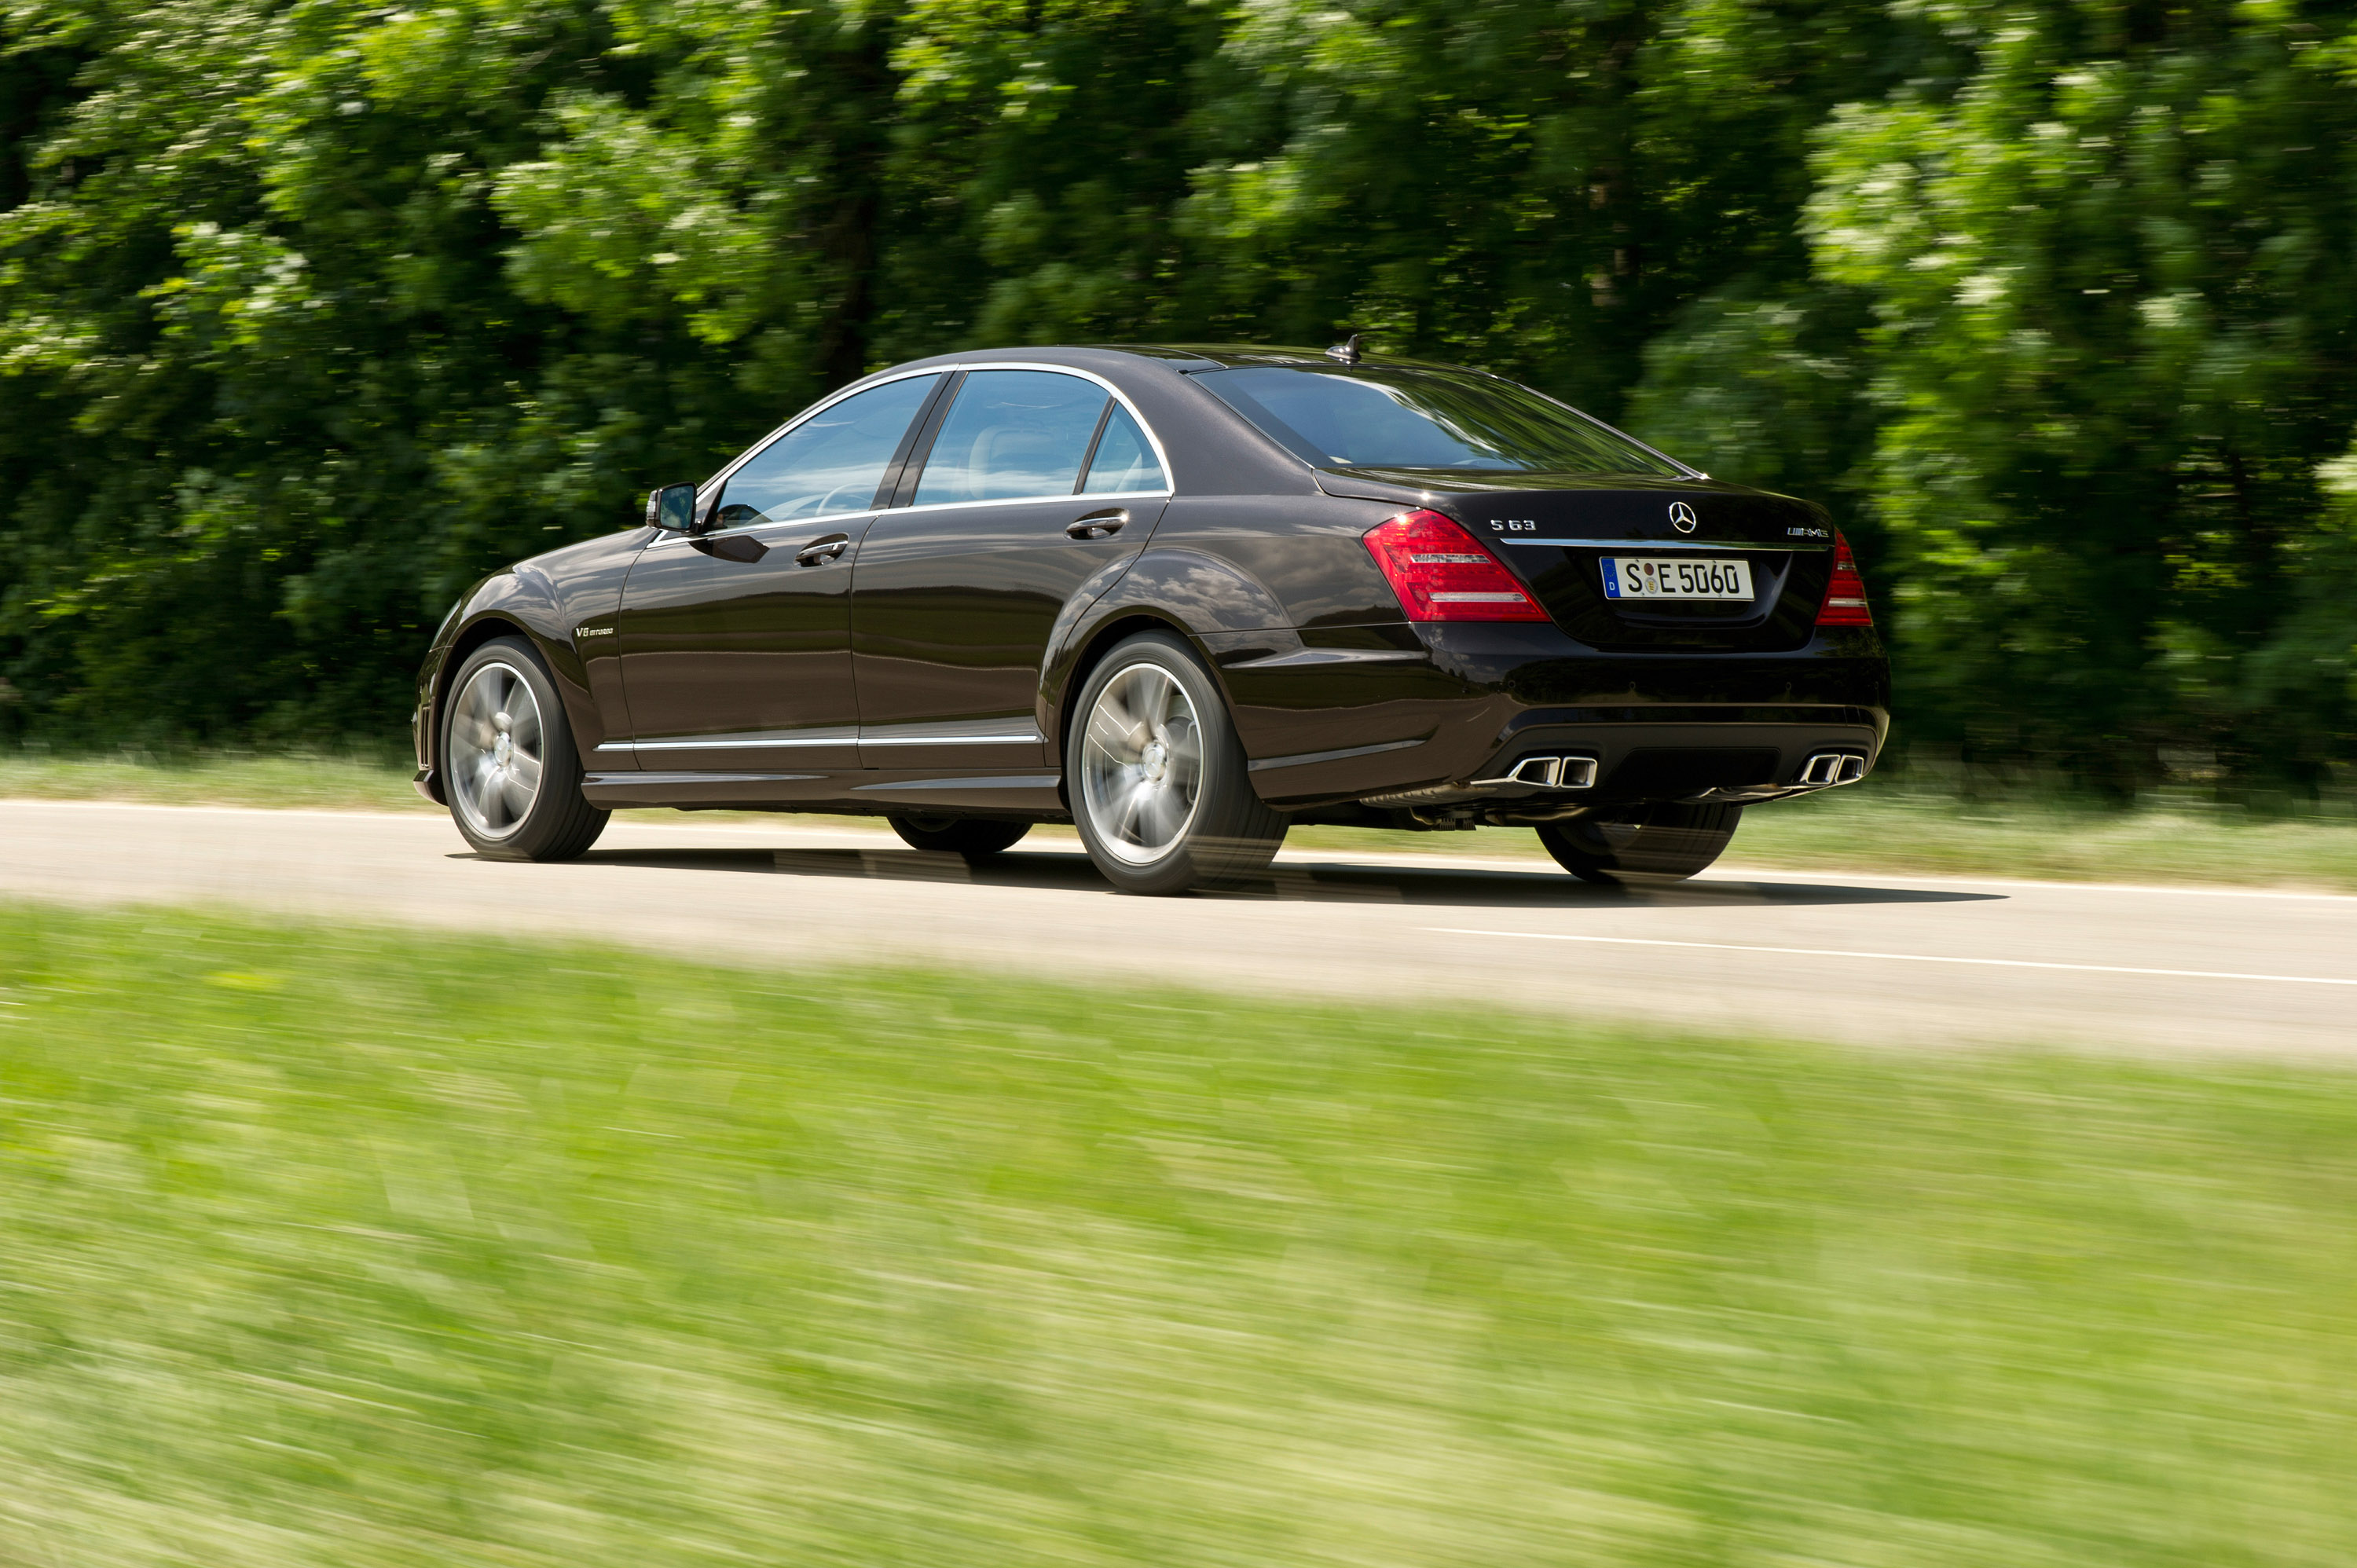 Mercedes-Benz S63 AMG - The ultimate high-performance седан - фотография №9